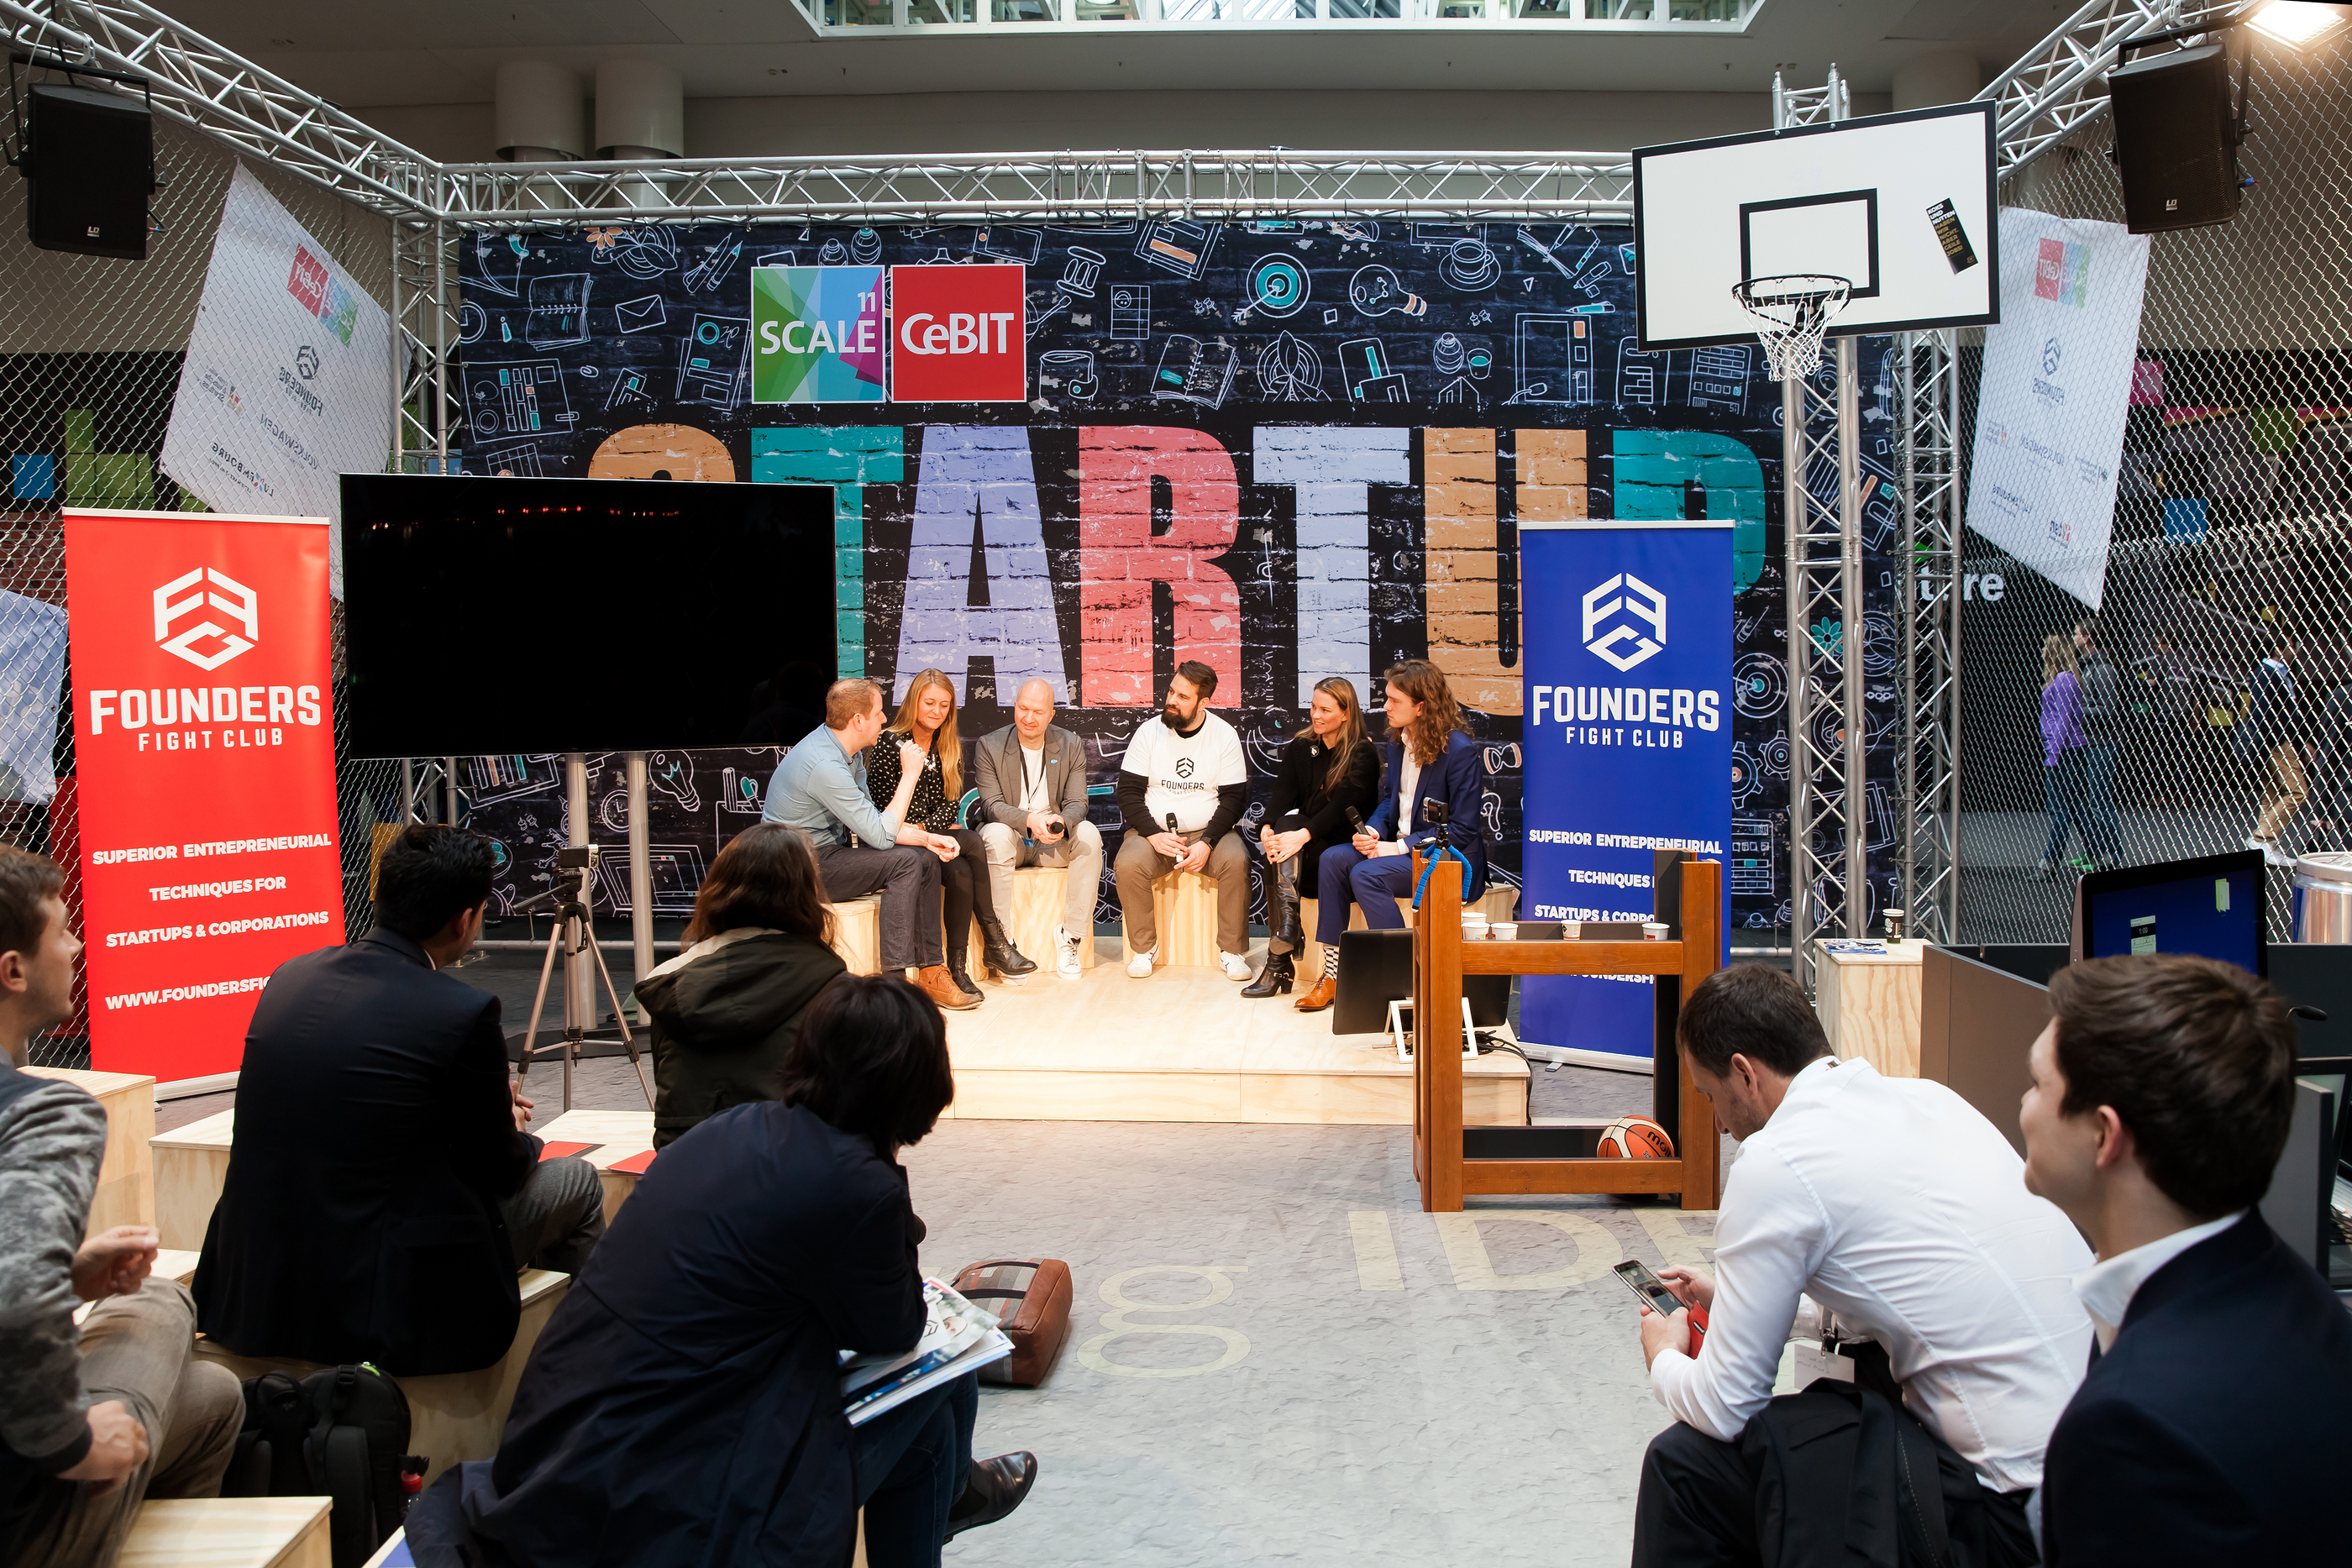 Founders Fight club conference, live stage conference on exhibition Cebit 2017 in Hannover Messe, Germany